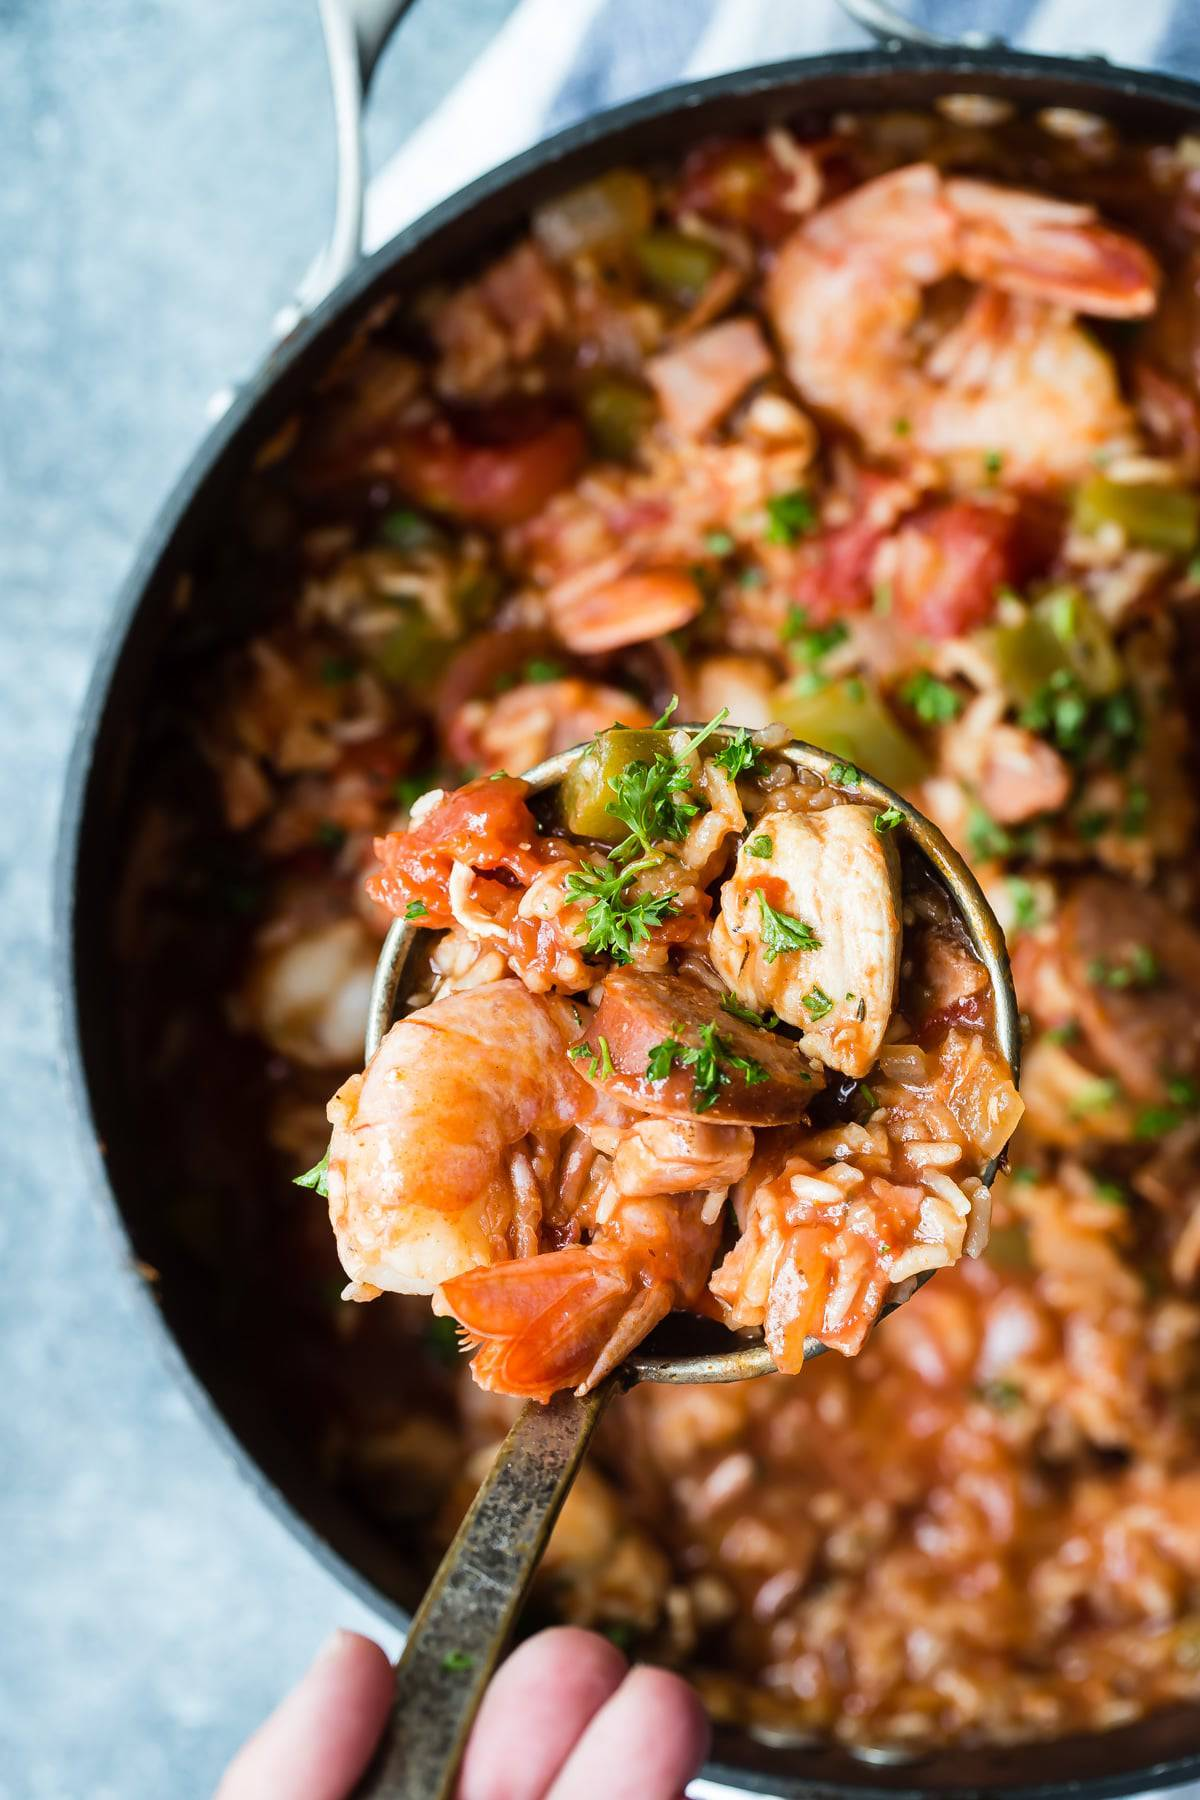 Scoop of cajun jambalaya with shrimp